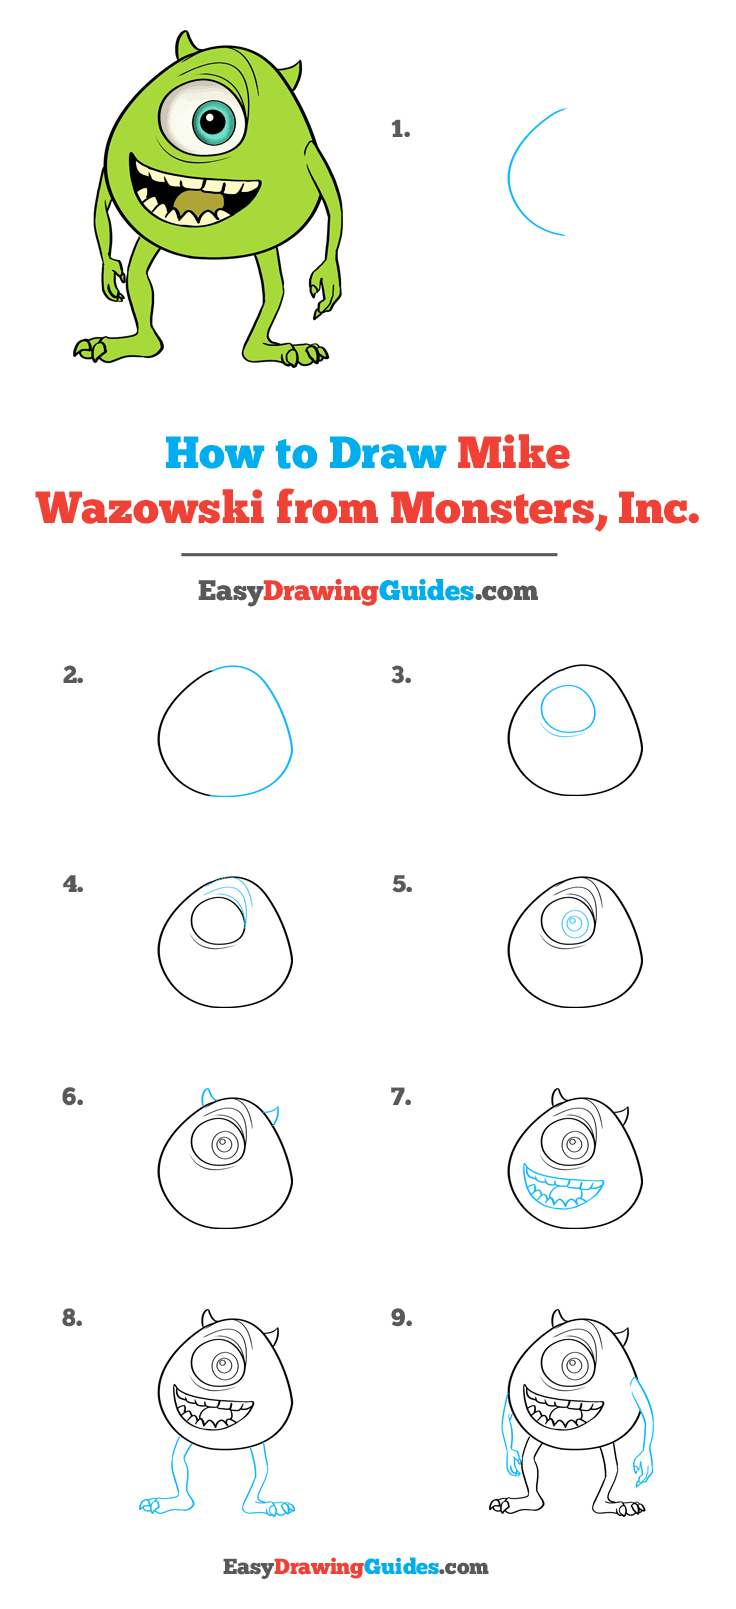 How to Draw Mike Wazowski from Monsters, Inc.